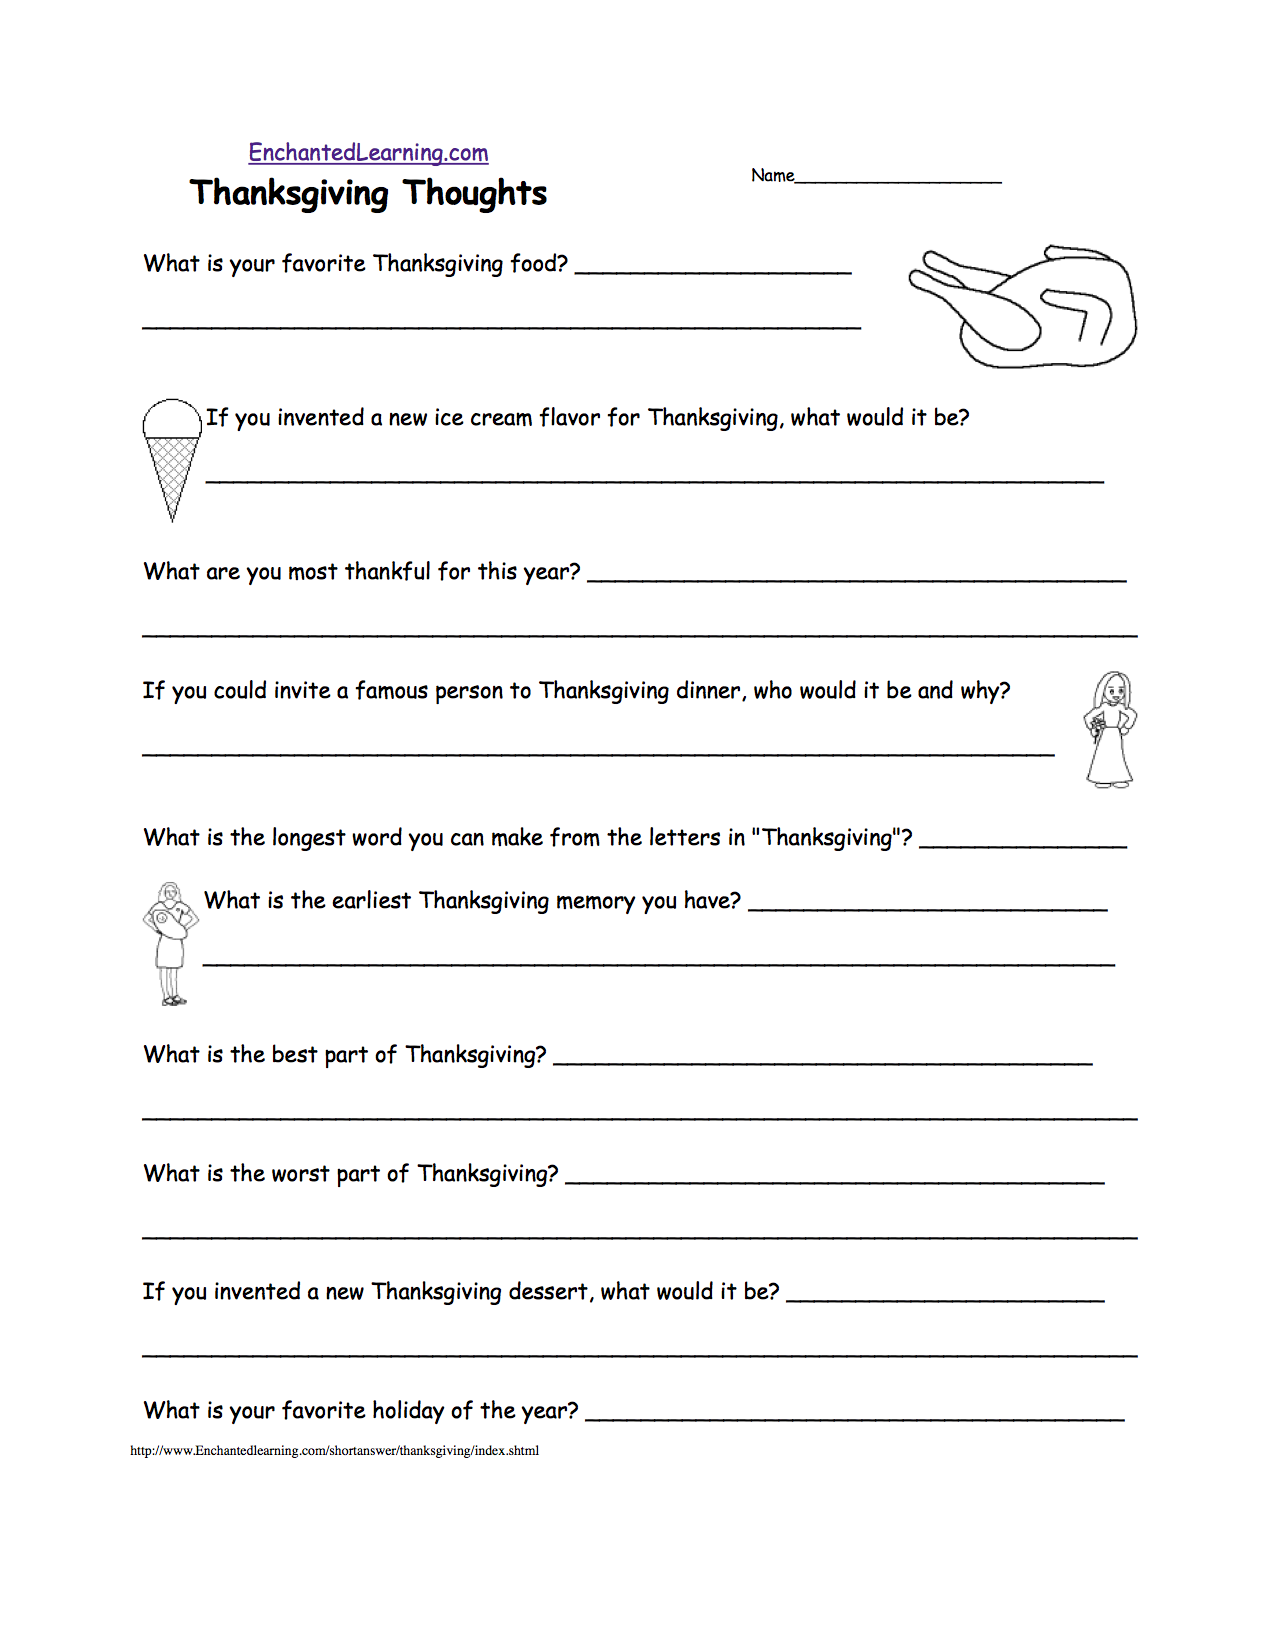 math worksheet : thanksgiving crafts worksheets and activities  : Thanksgiving Themed Math Worksheets